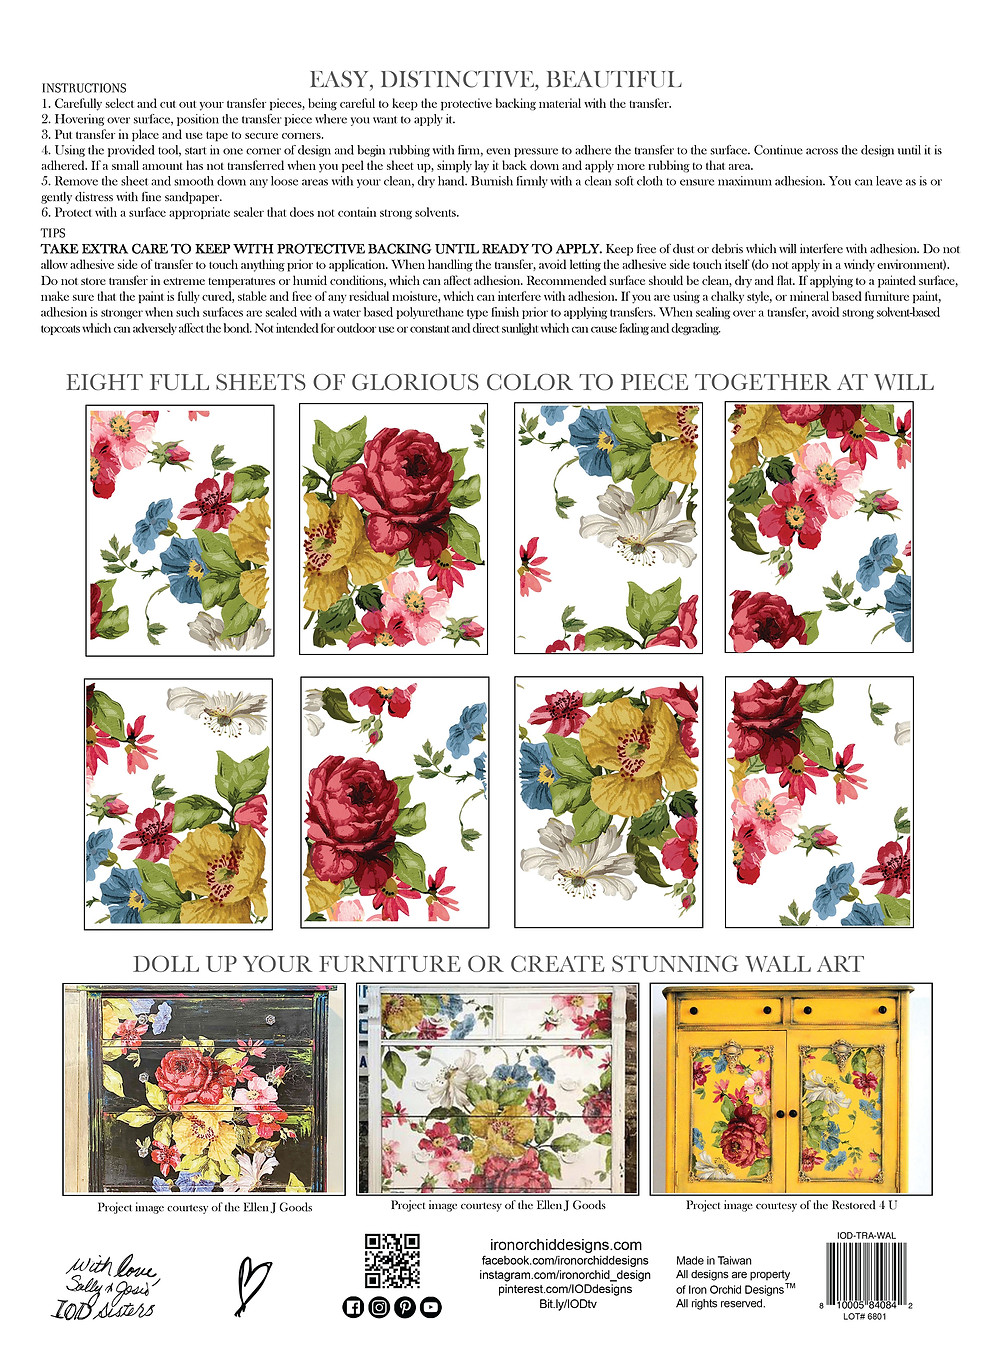 """In the 12"""" x 16"""" pad format, the 8 sheet set provides more imagery than the older version."""